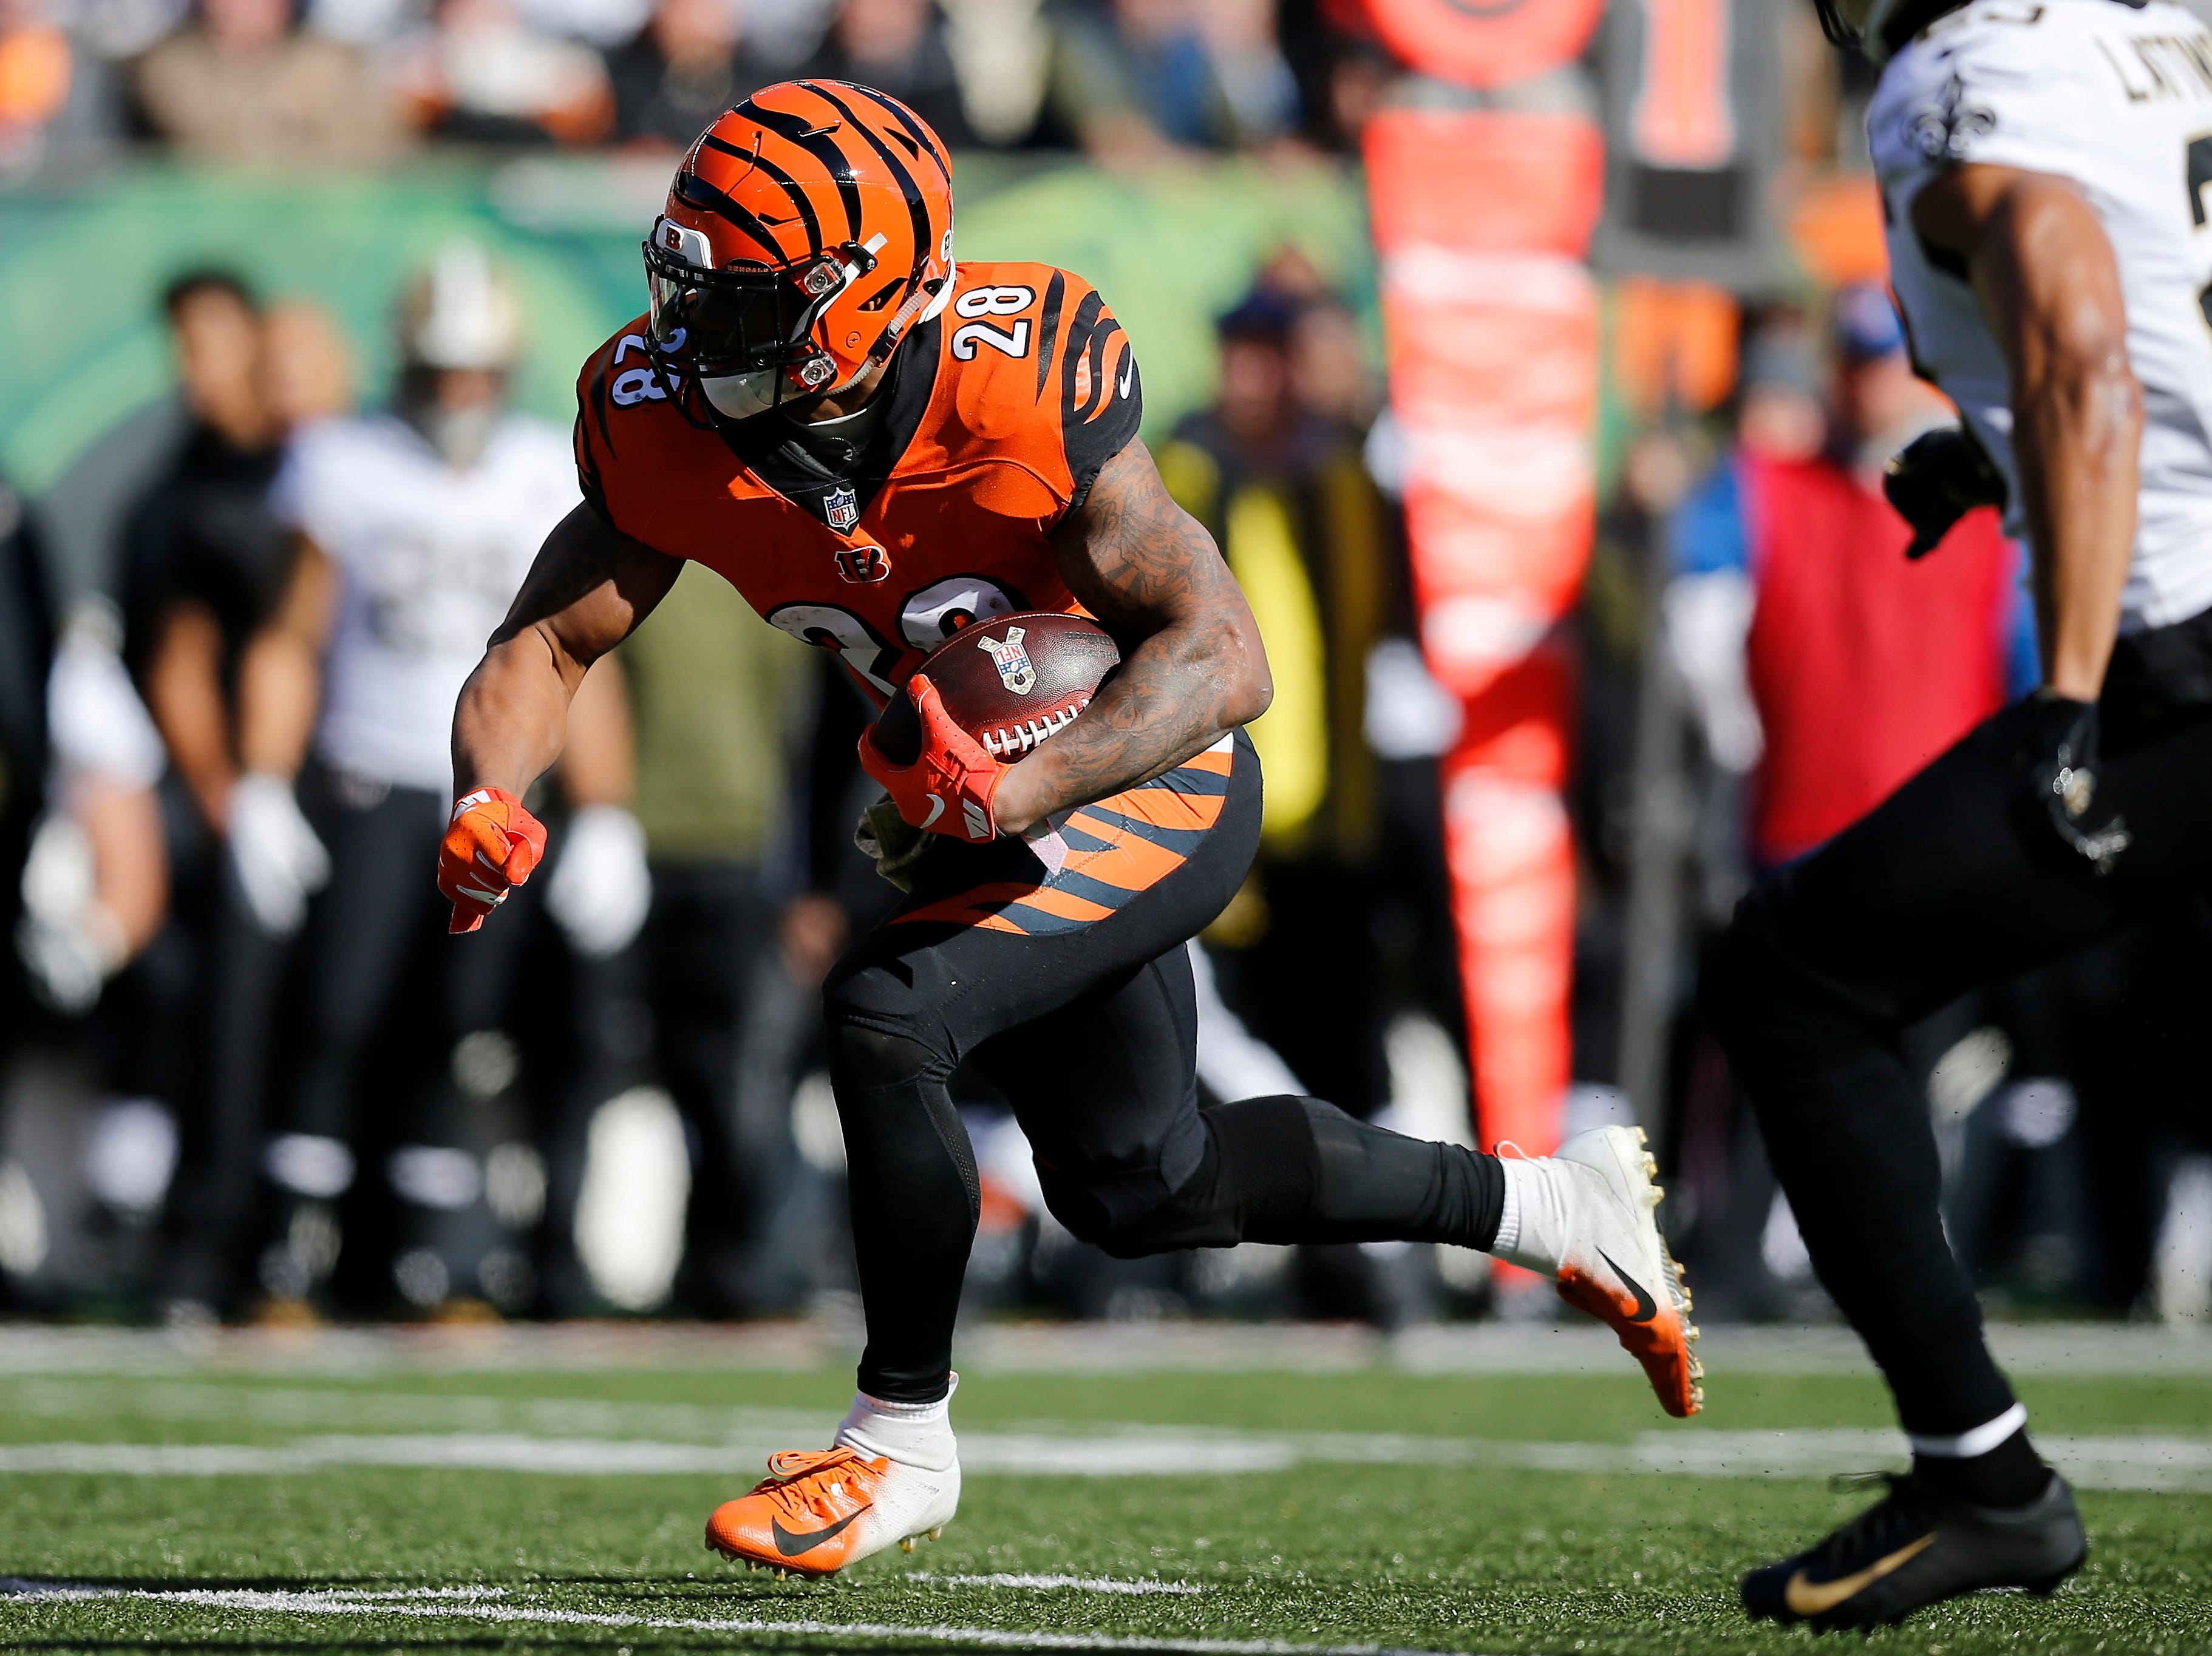 Cincinnati Bengals running back Joe Mixon (28) makes a carry for a first down in the first quarter of the NFL Week 10 game between the Cincinnati Bengals and the New Orleans Saints at Paul Brown Stadium in downtown Cincinnati on Sunday, Nov. 11, 2018. The Saints led 35-7 at halftime.